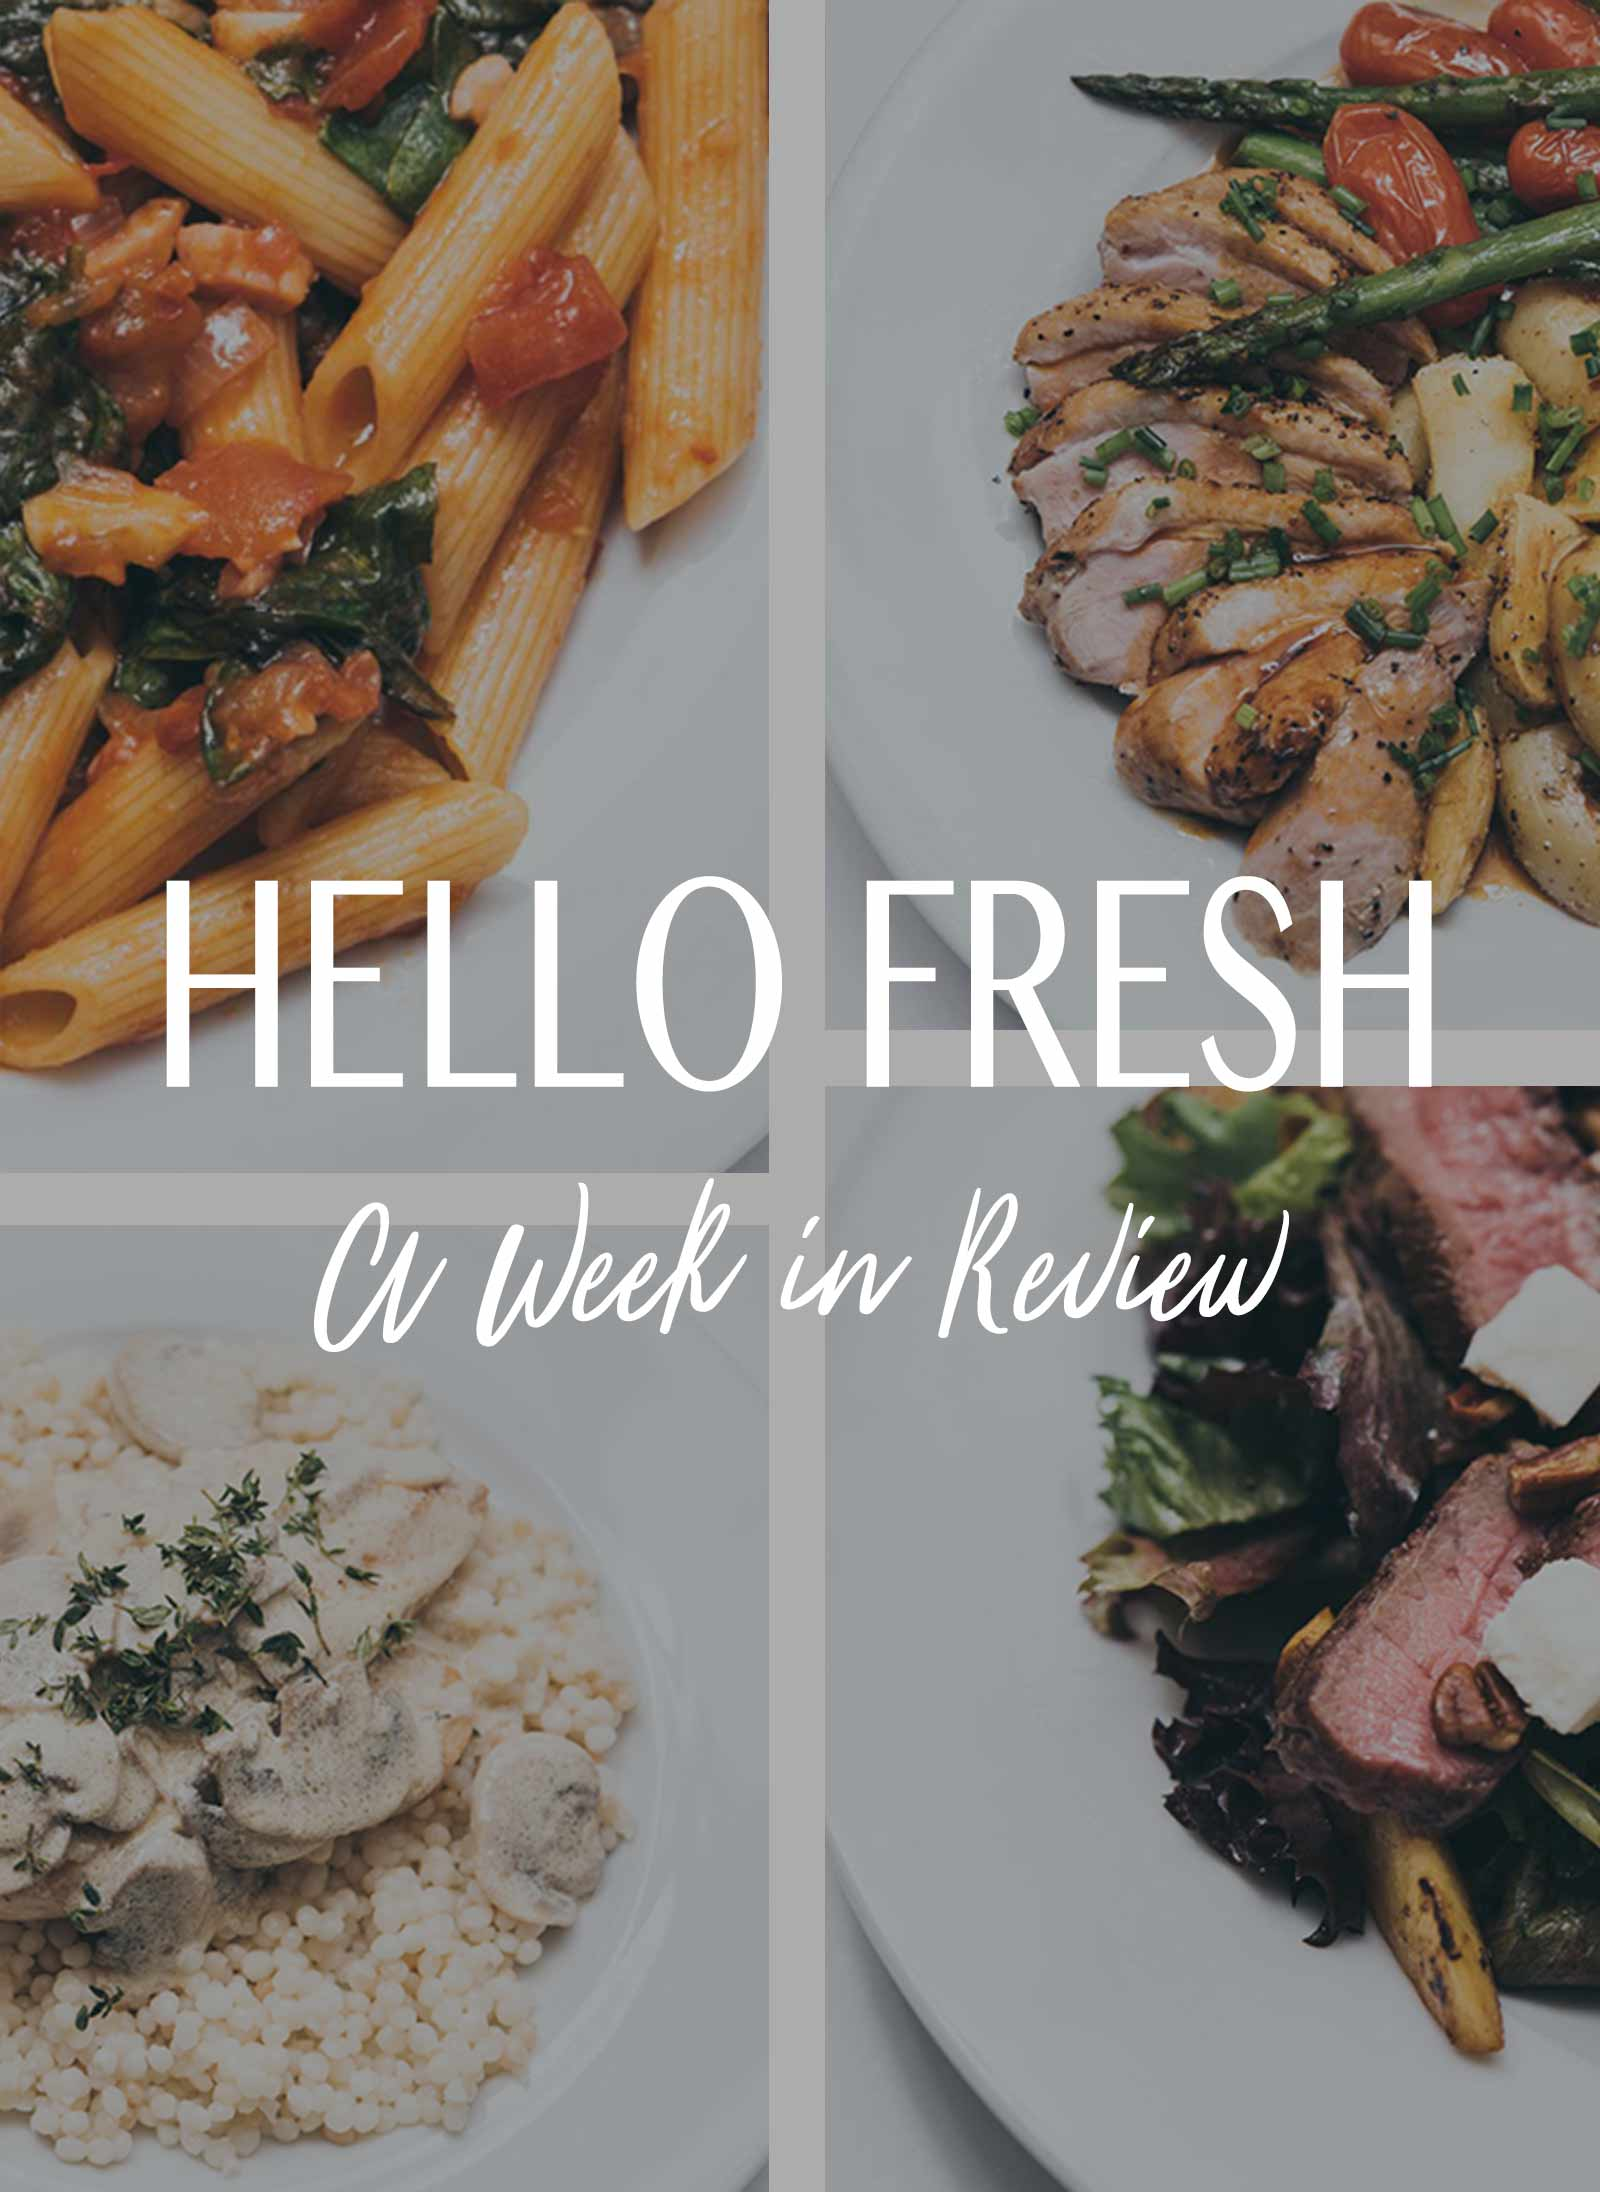 Hellofresh Meal Kit Delivery Service Price Discount April